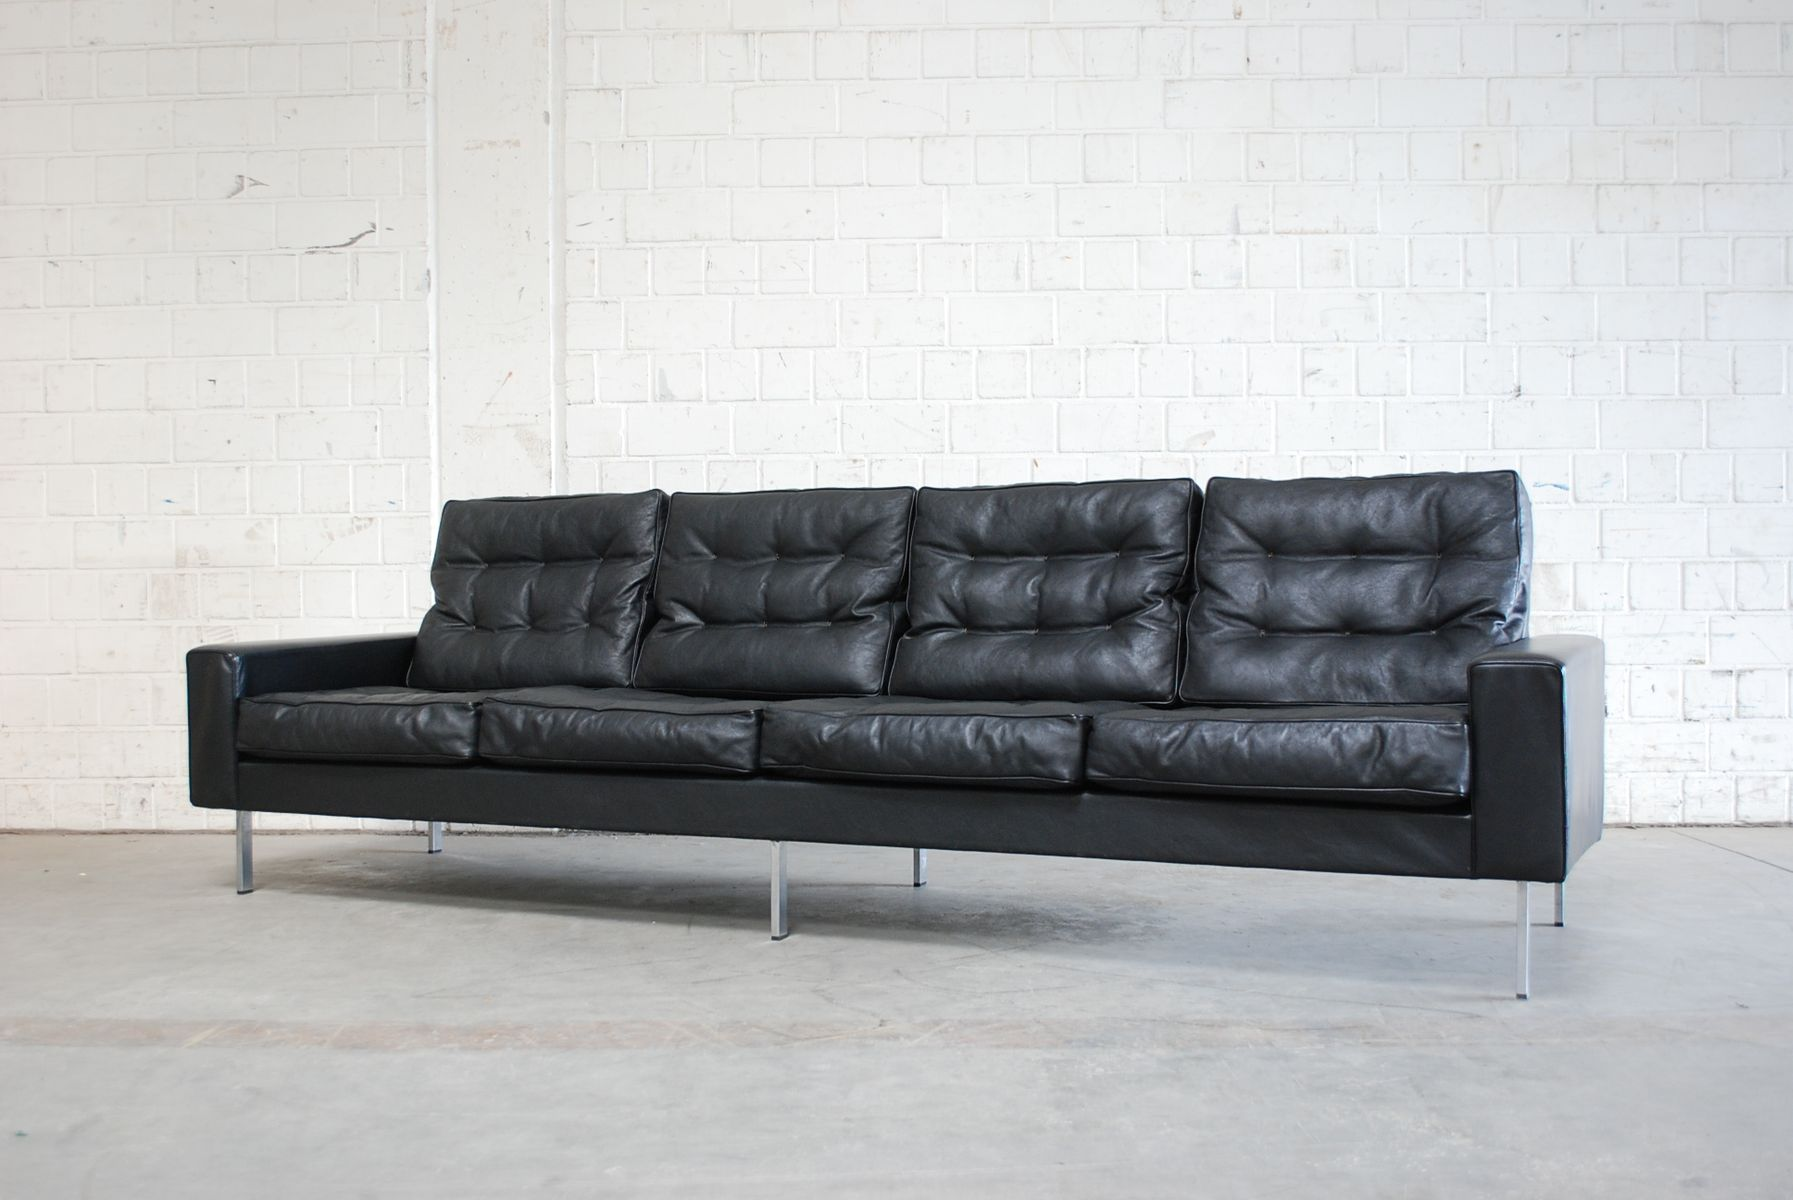 Vintage black leather 4 seater sofa from de sede 1967 for for Leather sofa 7 seater